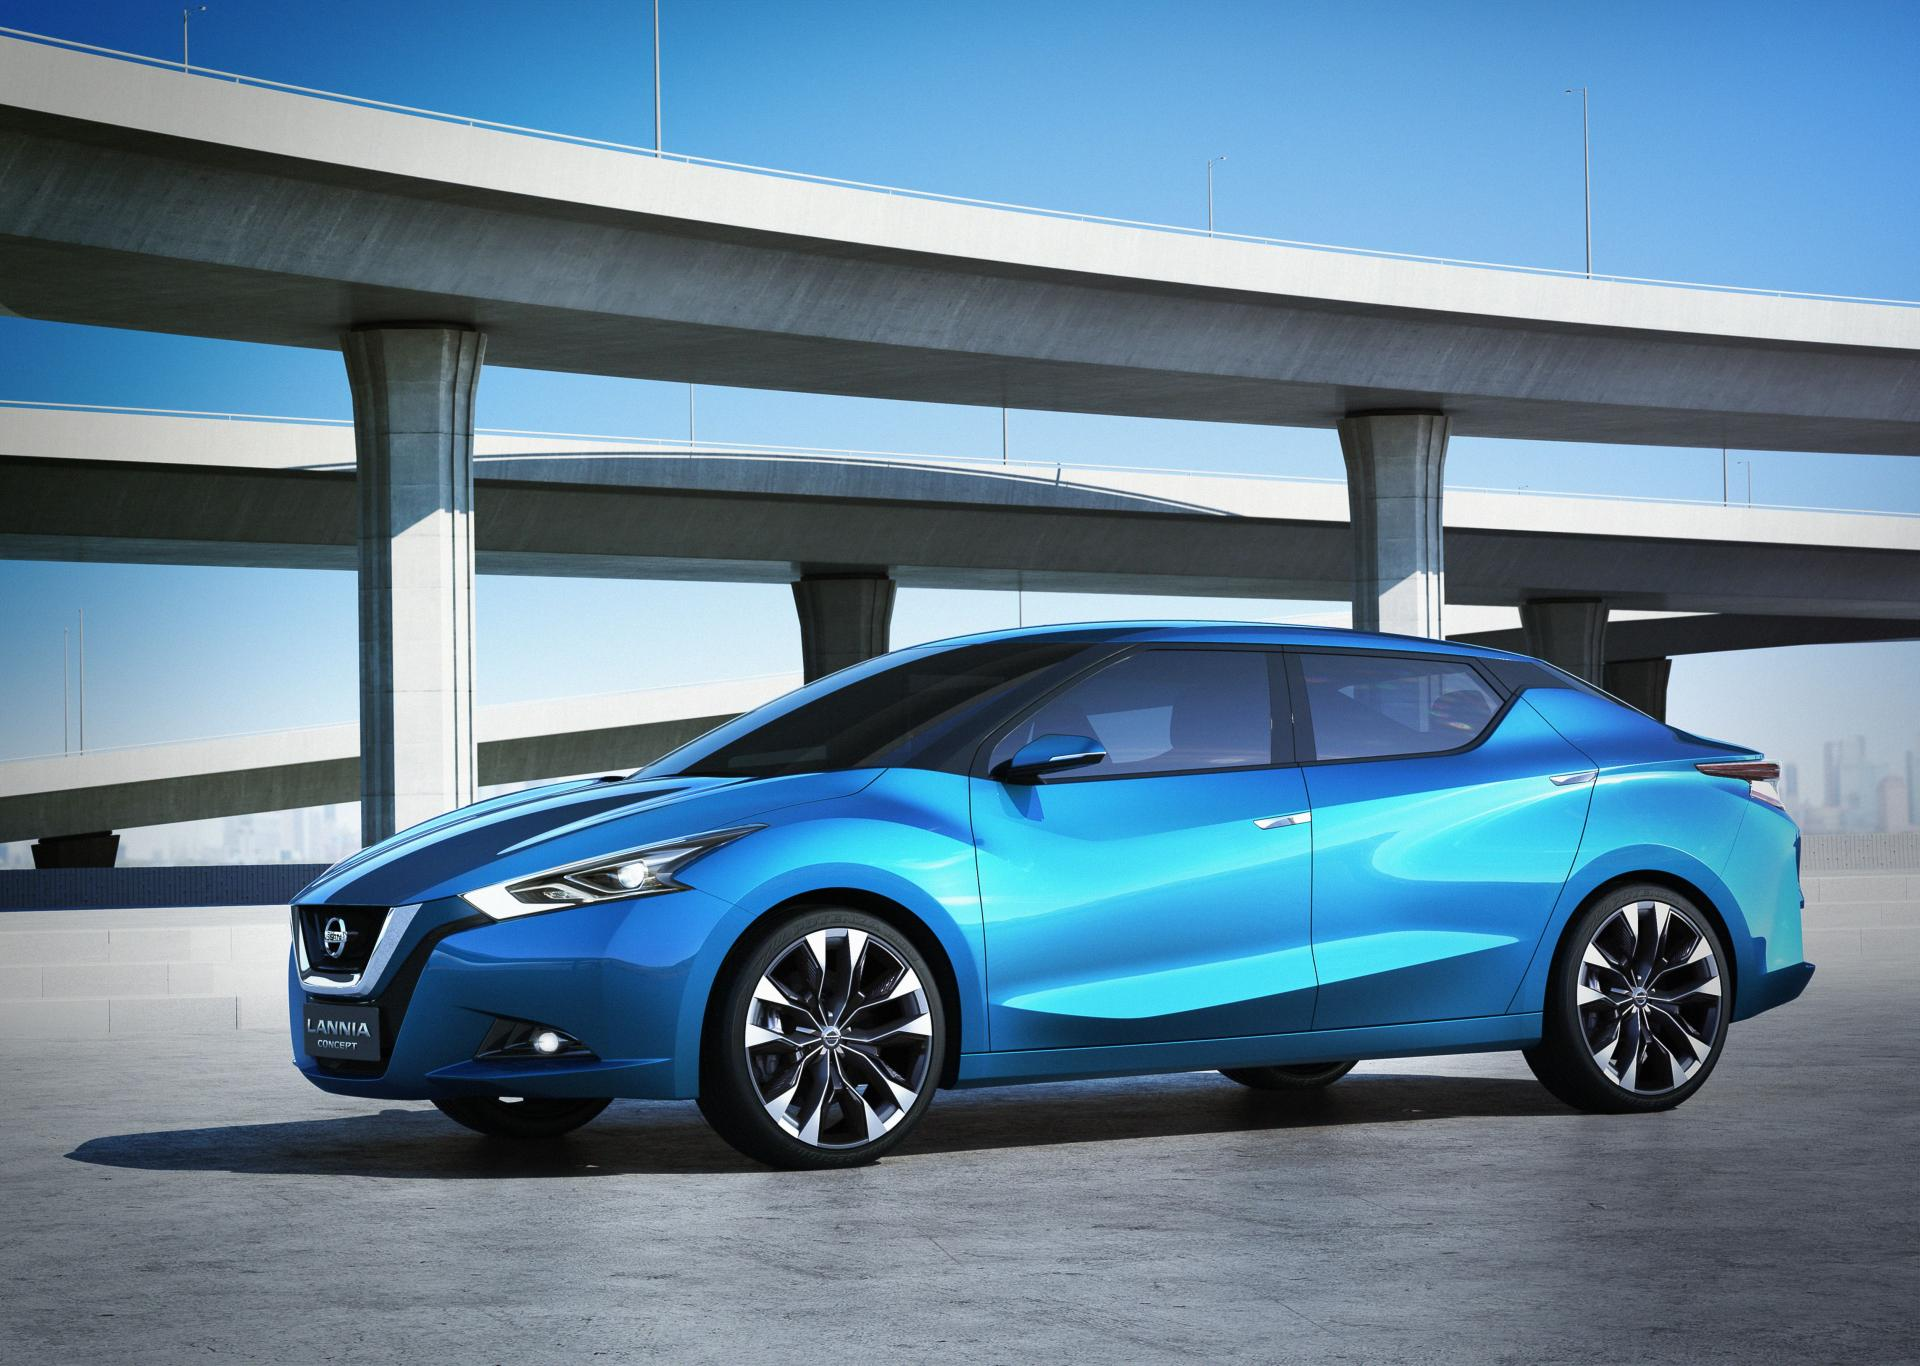 2014 Nissan Lannia Concept High Quality Background on Wallpapers Vista